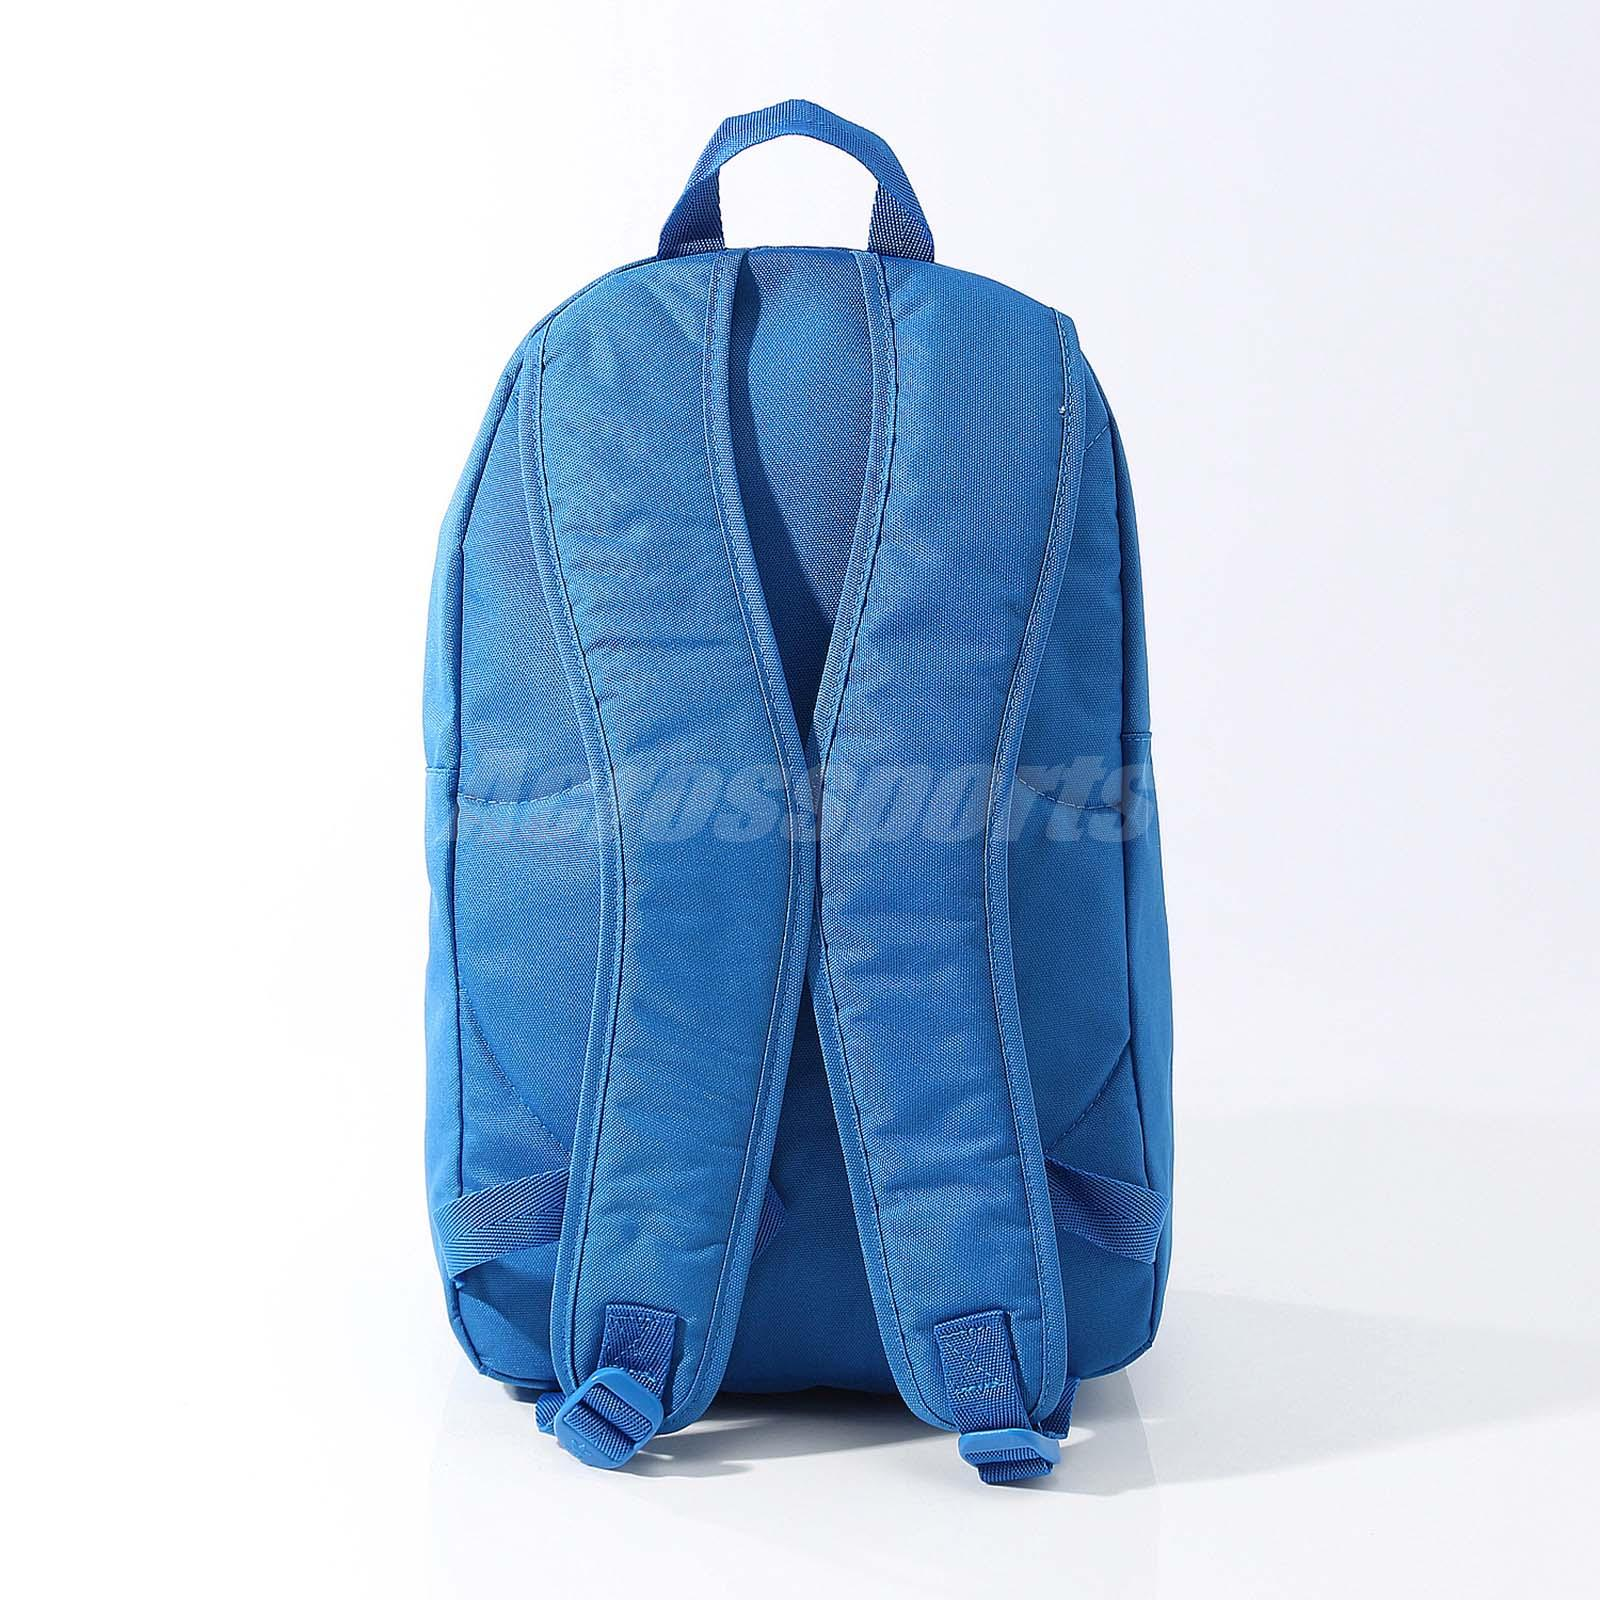 d74963a78a32 Buy adidas originals backpack blue   OFF50% Discounted